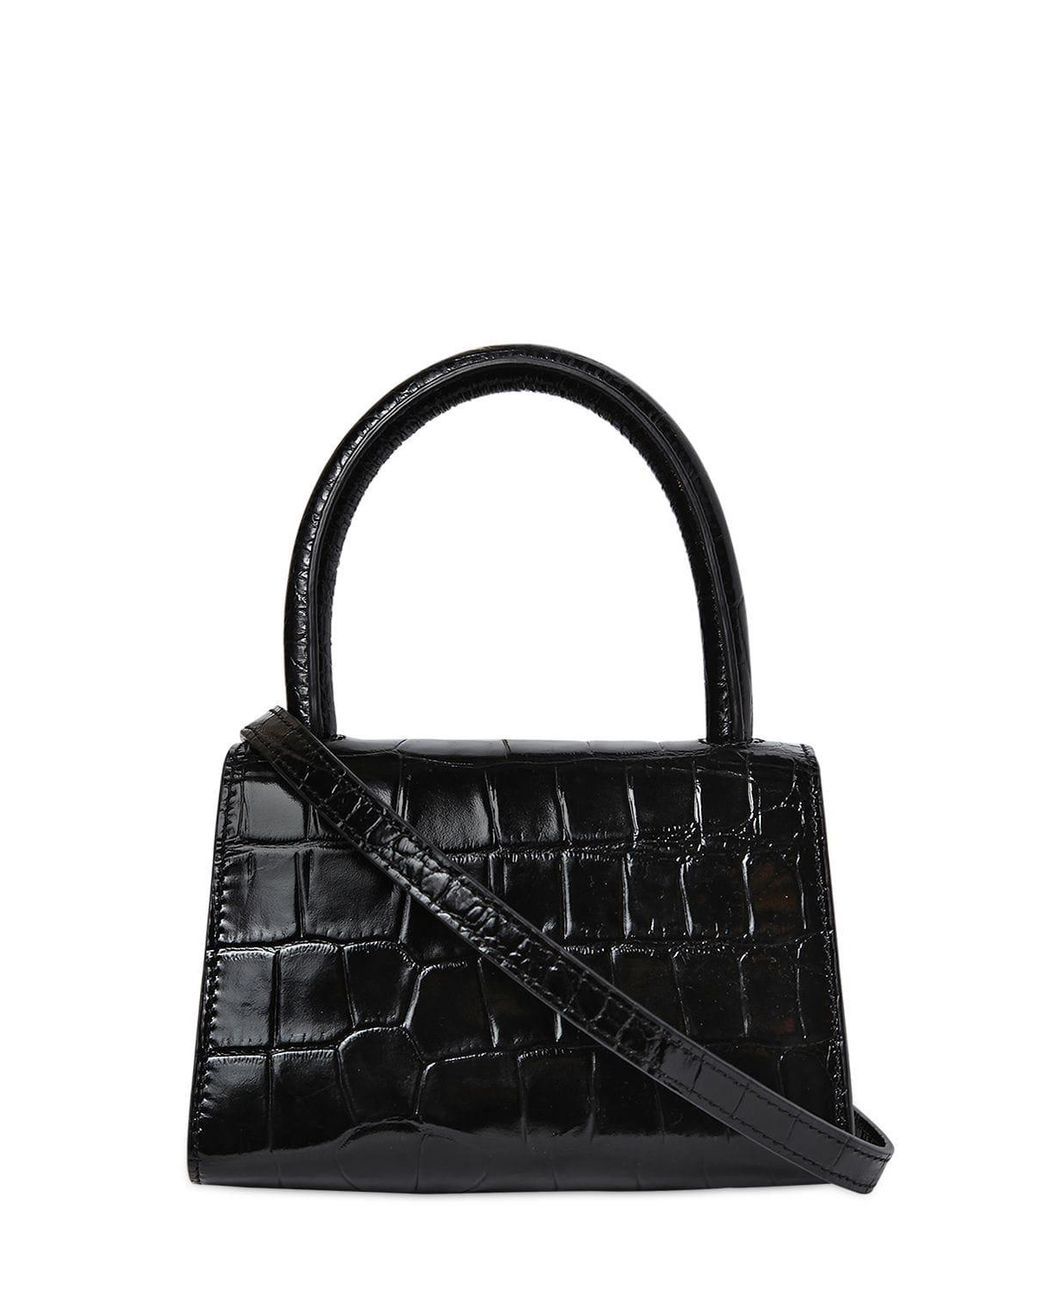 795a6316 BY FAR Mini Croc Embossed Leather Bag in Black - Lyst